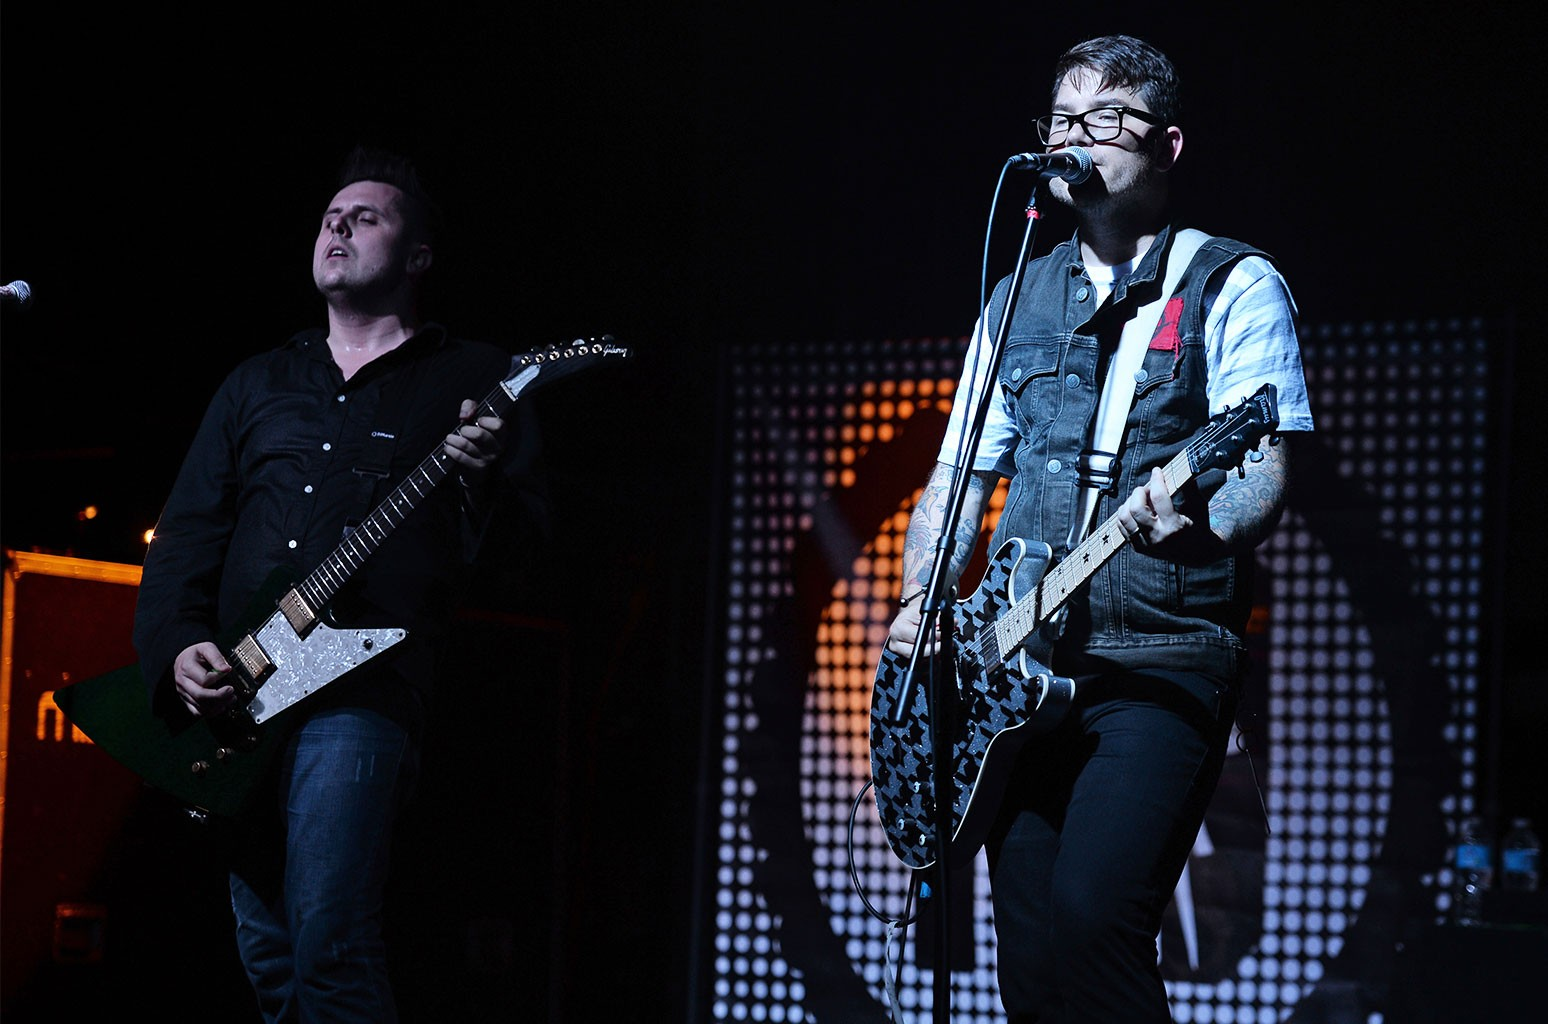 Micah Carli and JT Woodruff of Hawthorne Heights